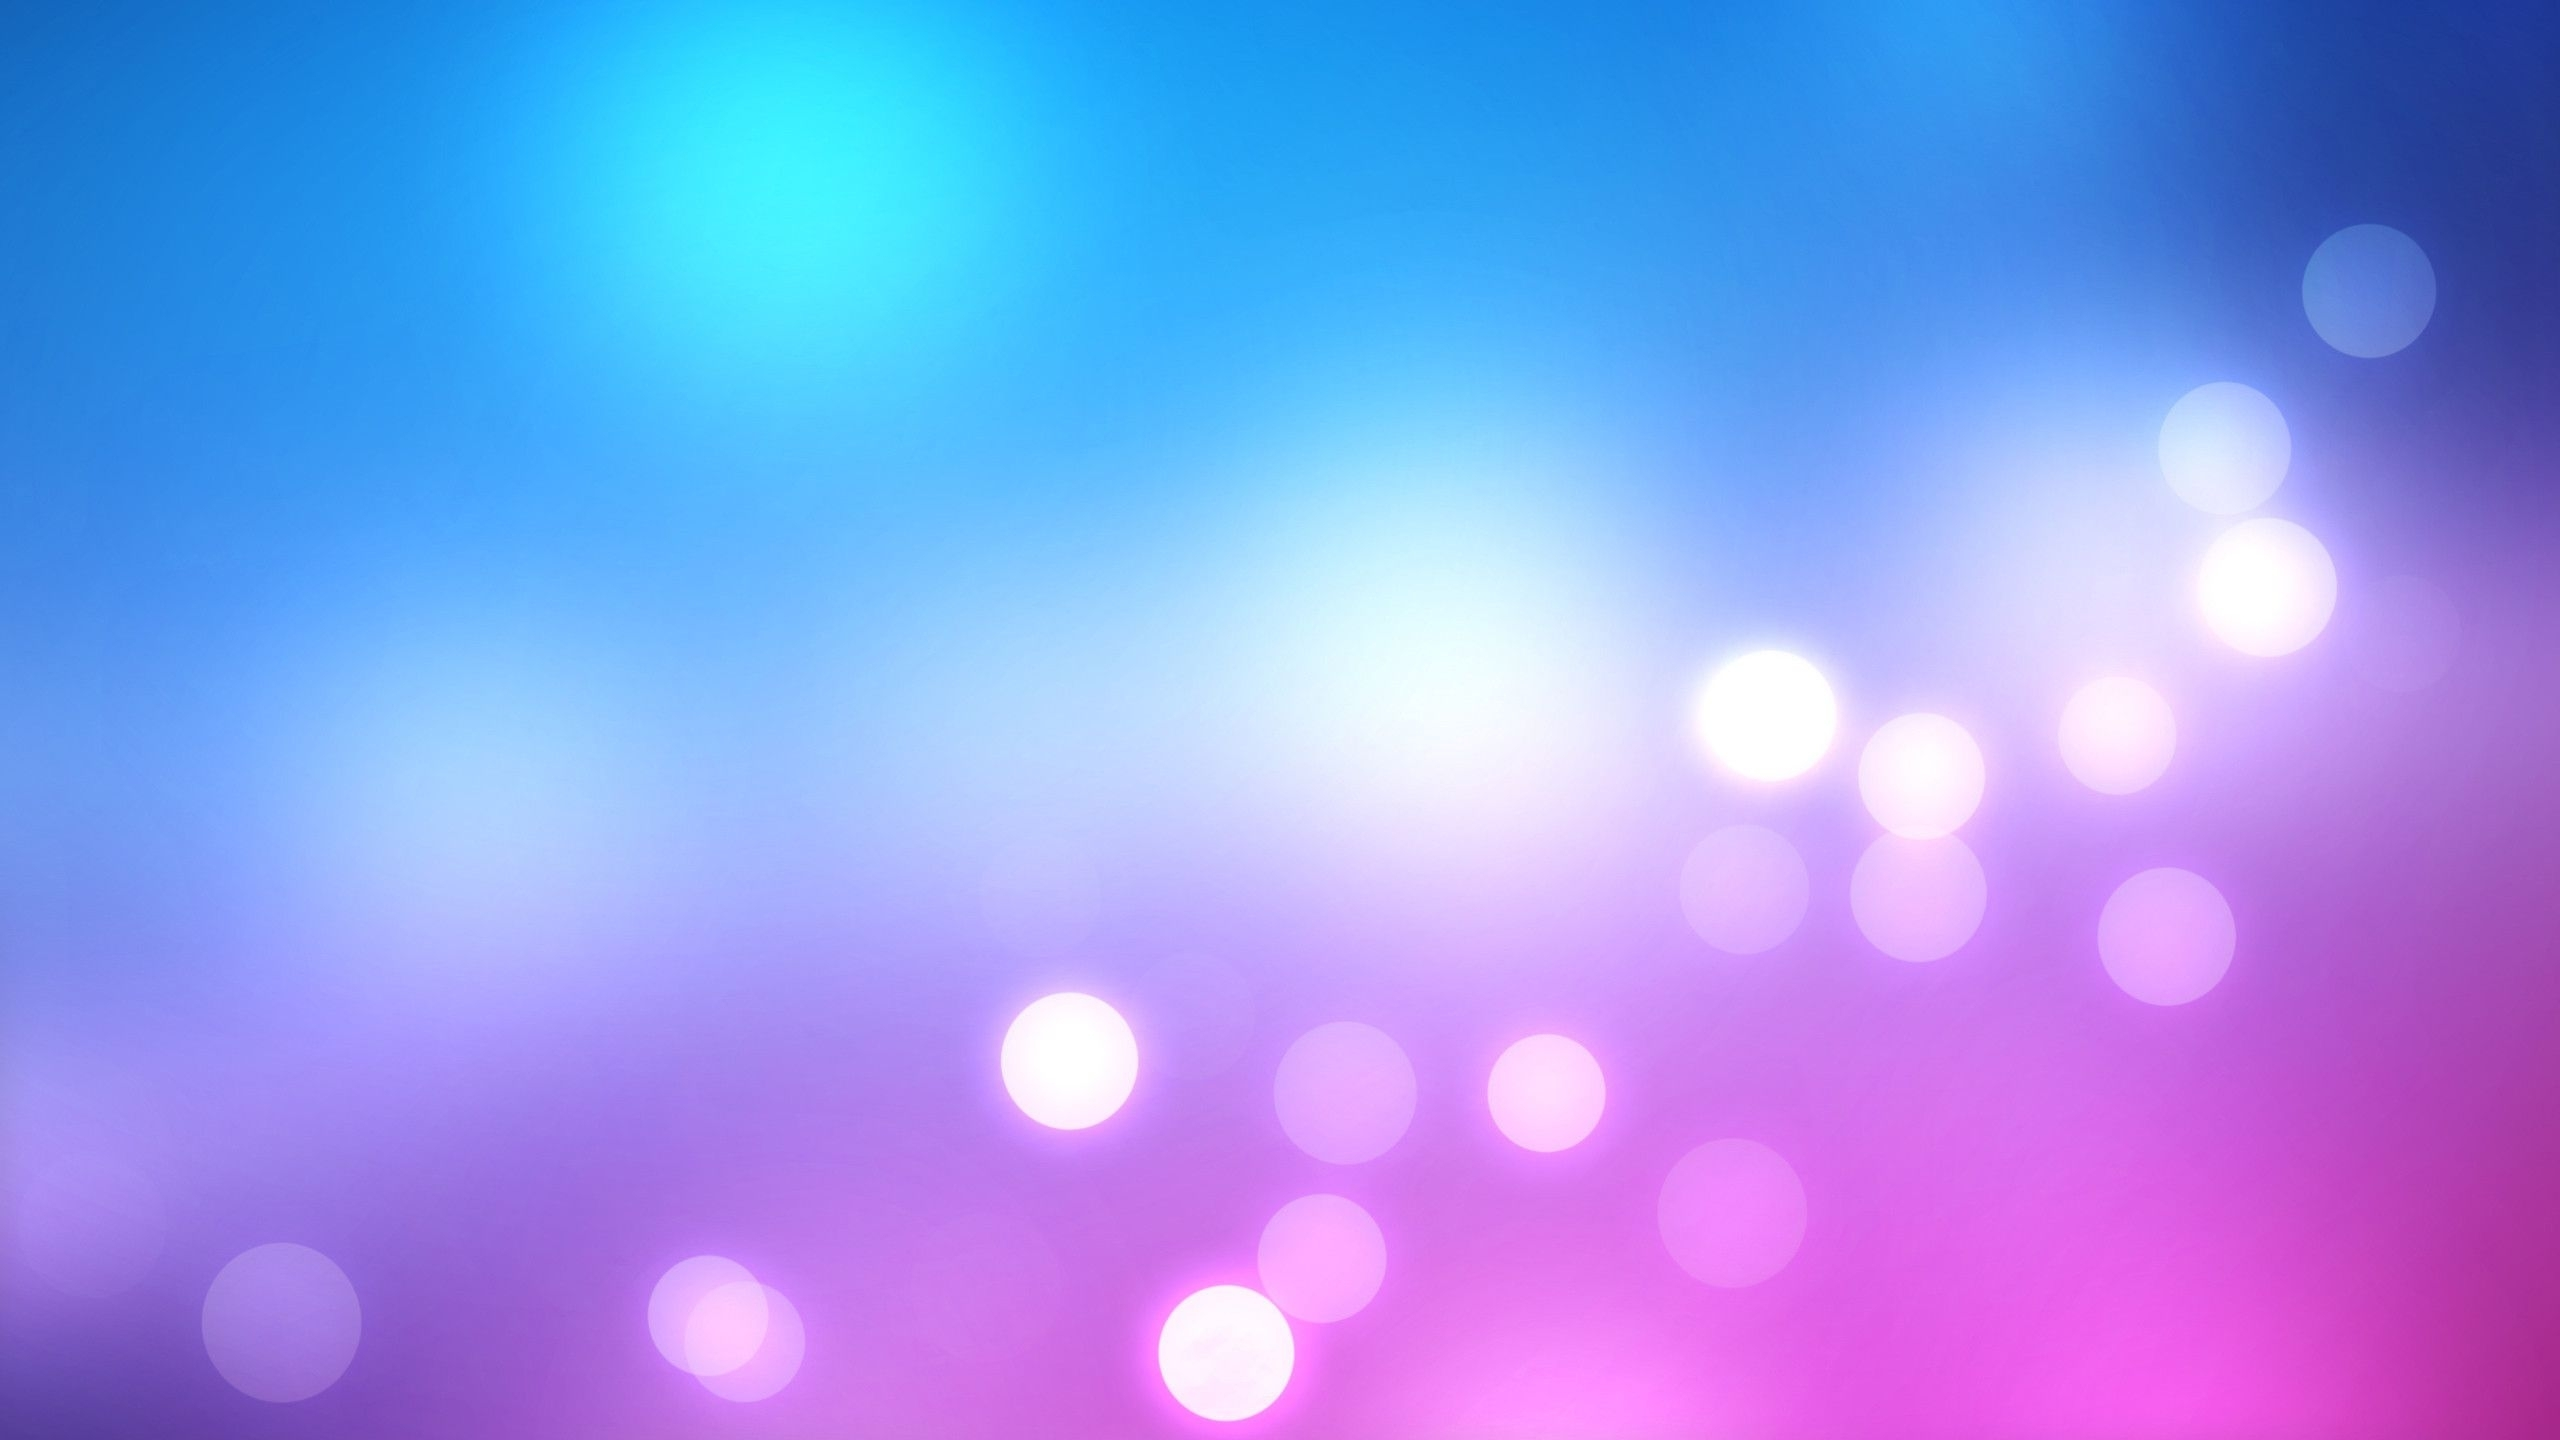 wallpaper.wiki-blue-and-purple-wallpaper-hd-pic-wpb002061